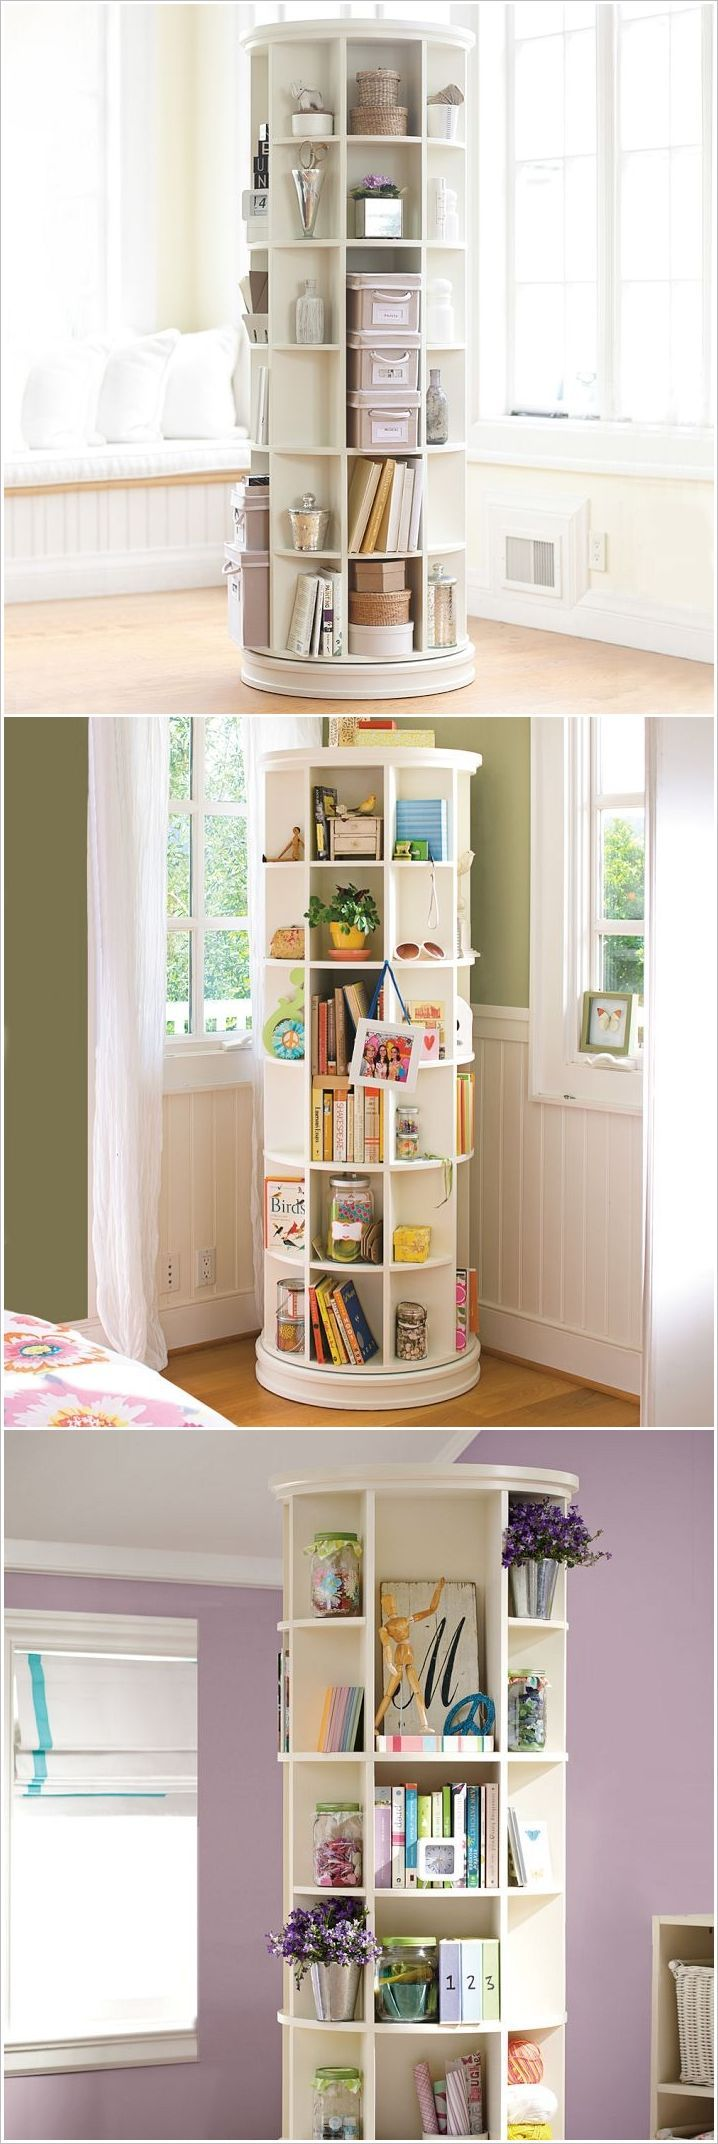 1000 ideas about teen room storage on pinterest girls 13279 | a1037985cd802ea3a383f796523892bb